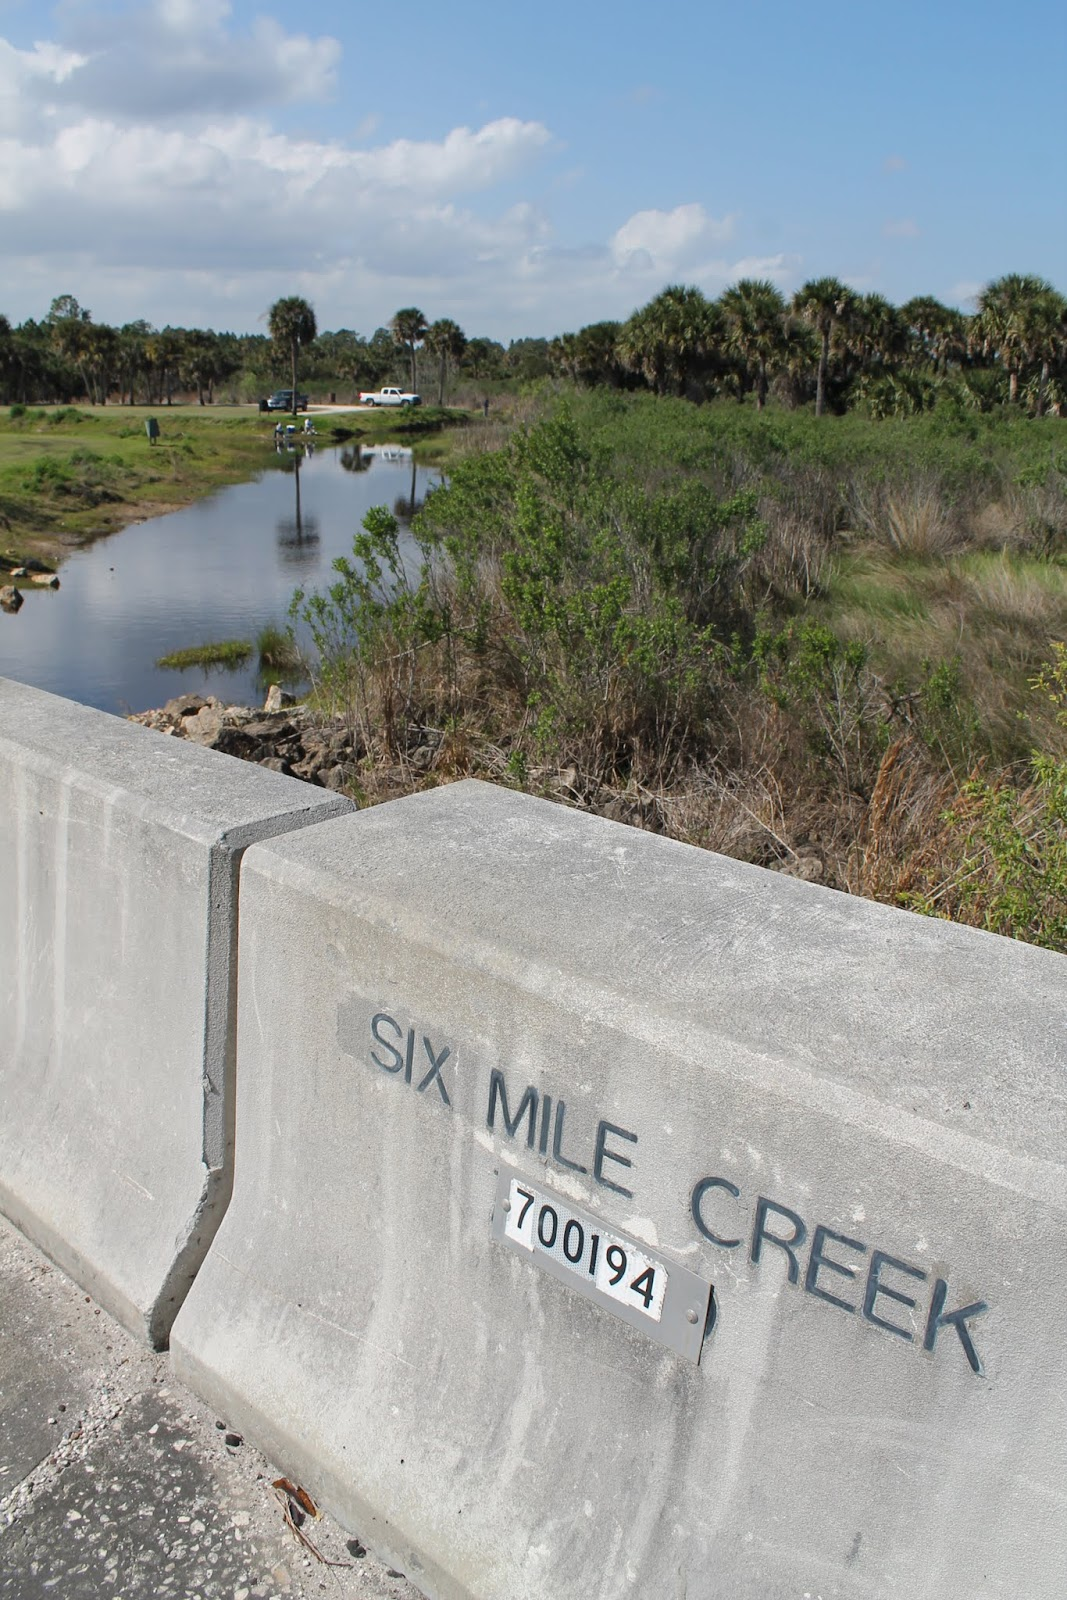 Six Mile Creek